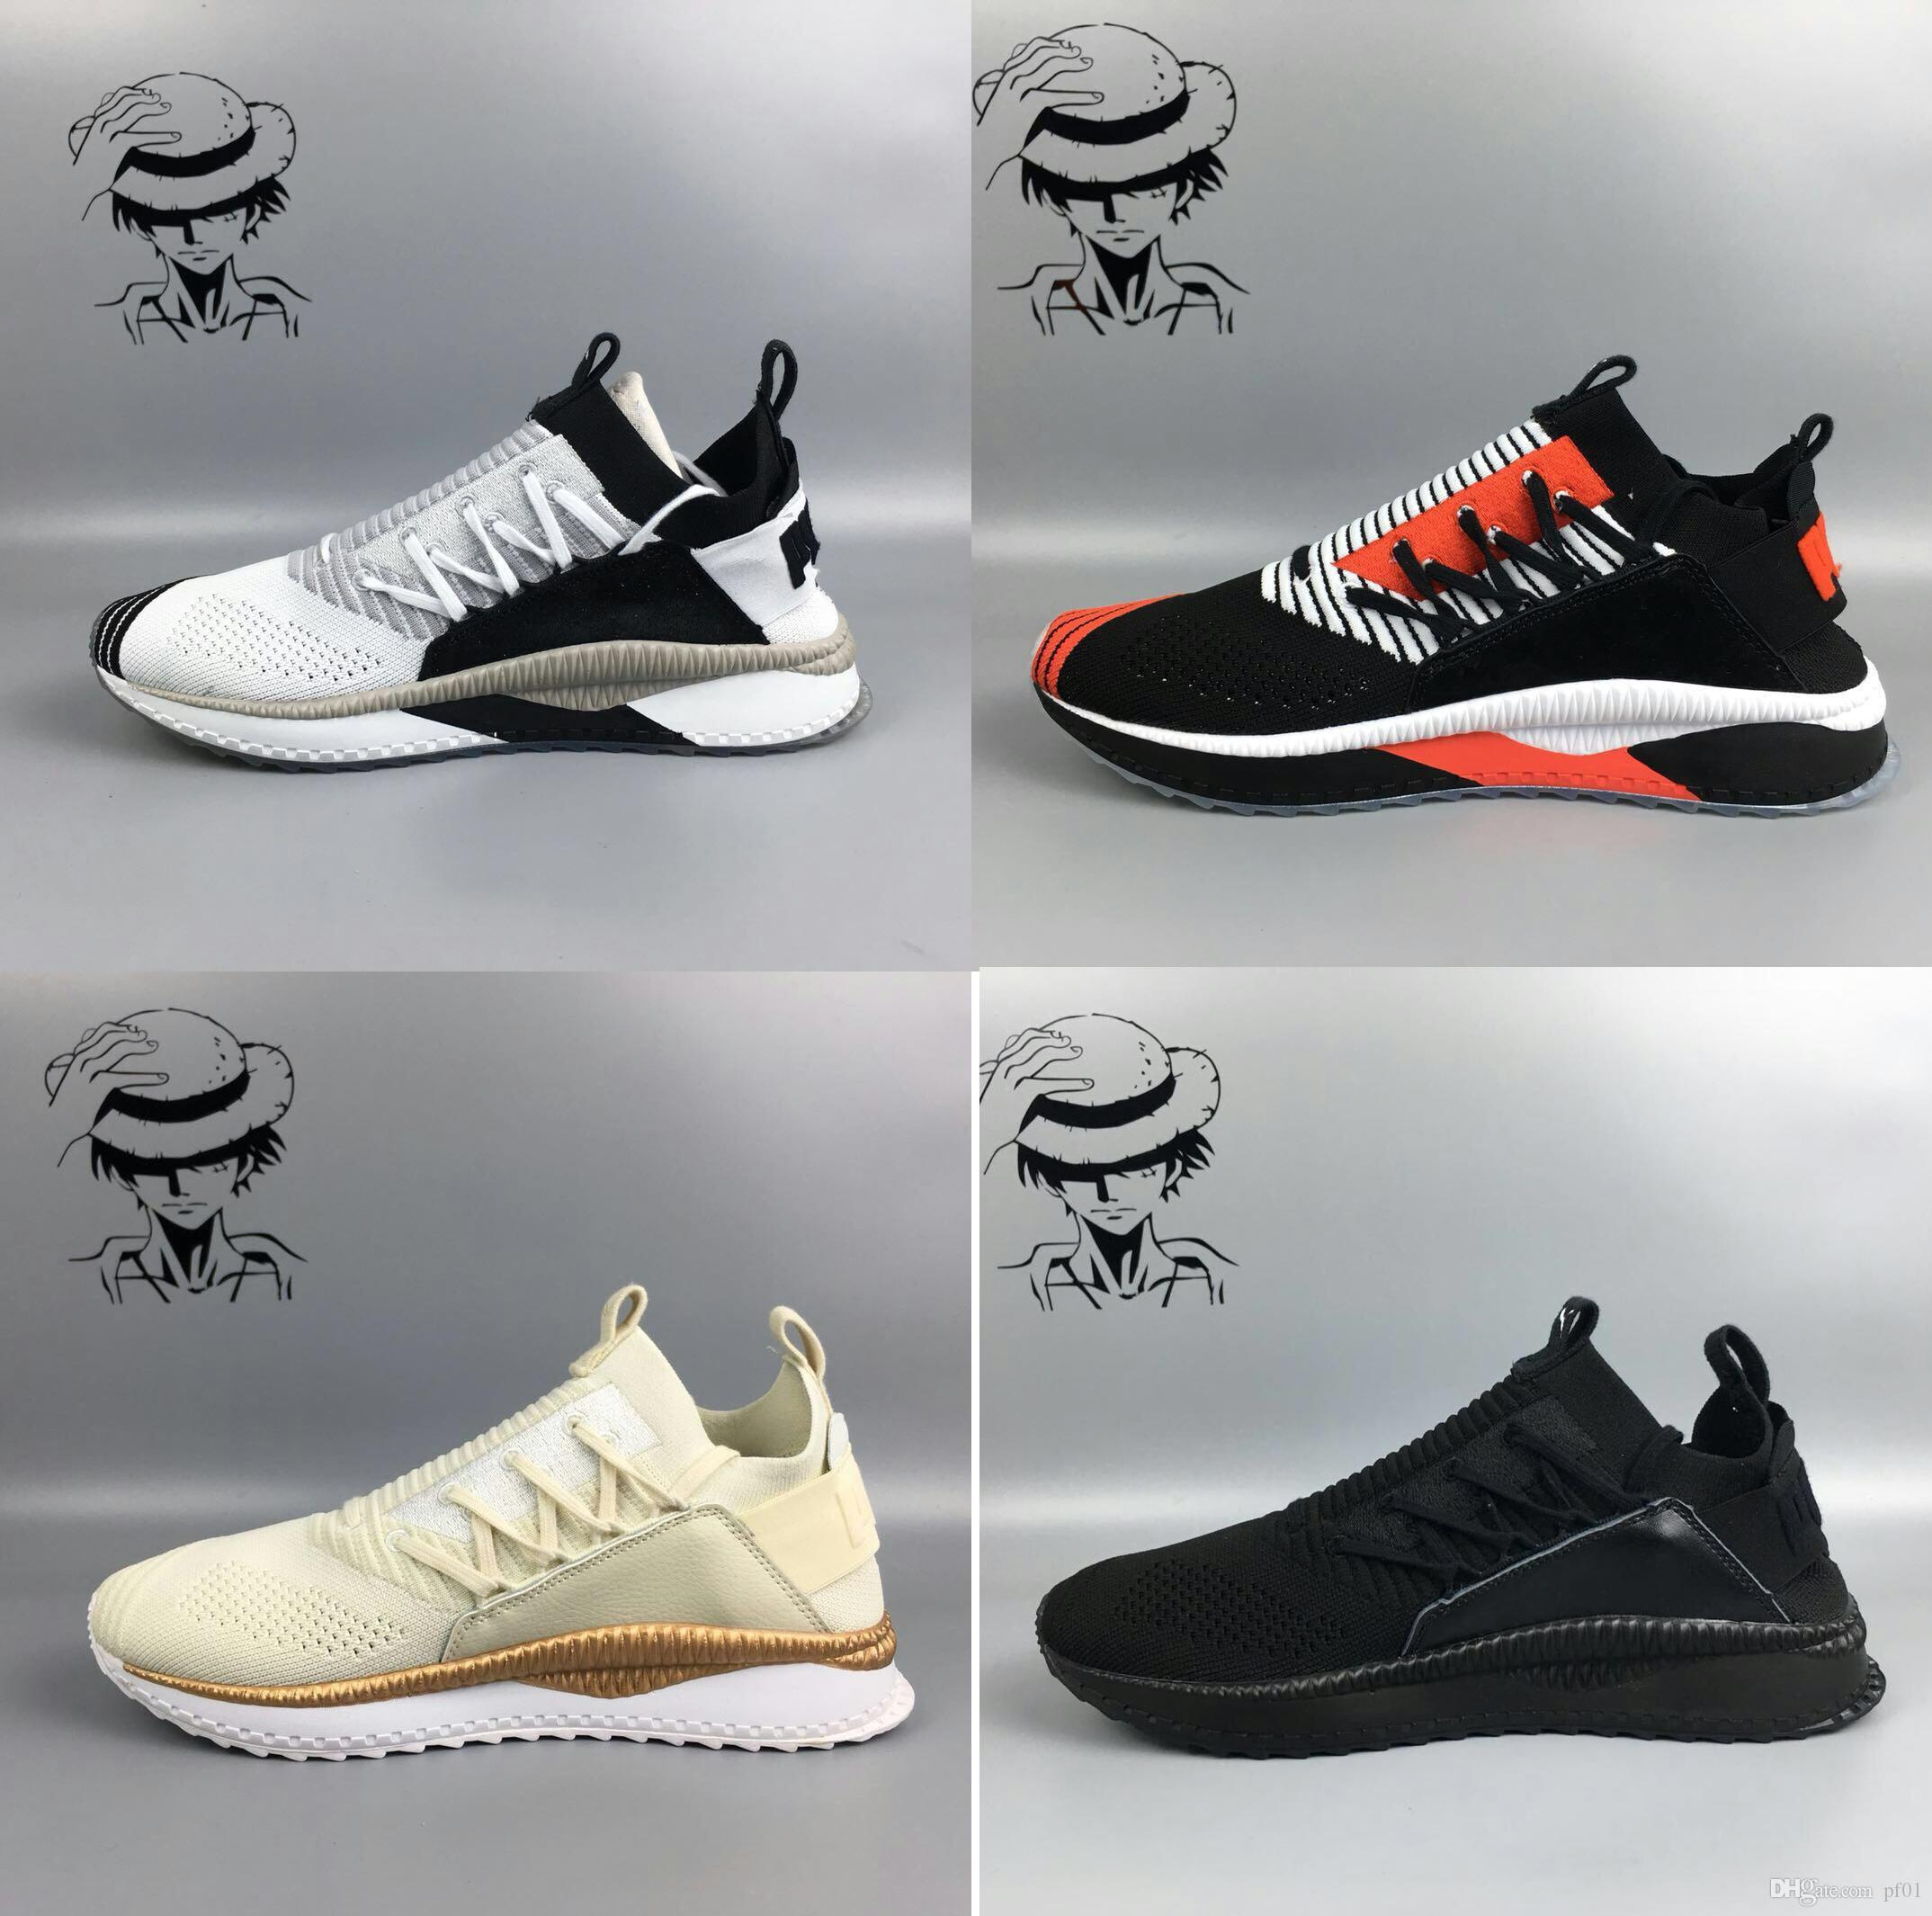 5eb72aef7fe Hot Sale TSUGI JUN Cubism Women Mens Running Shoes Sneakers Creeper Camo  Black Gold Tiple White Running Shoes Online with  90.18 Pair on Pf01 s  Store ...